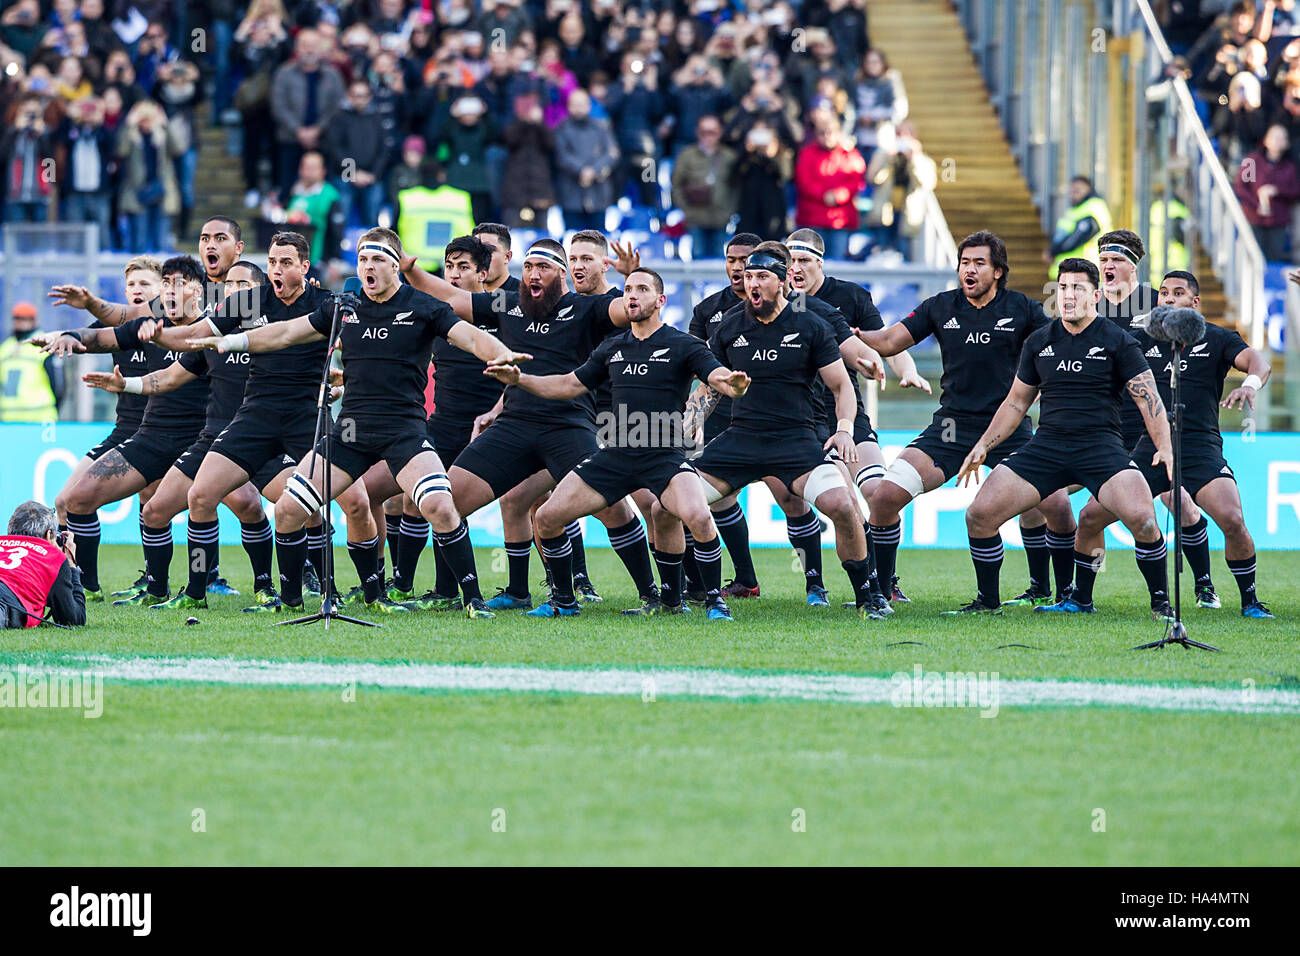 Roma ITALY - 12 November 2016 - Rugby - Stadio Olimpico in Roma  - Rugby Test Match - Italy  New Zealand - New Zealand Stock Photo